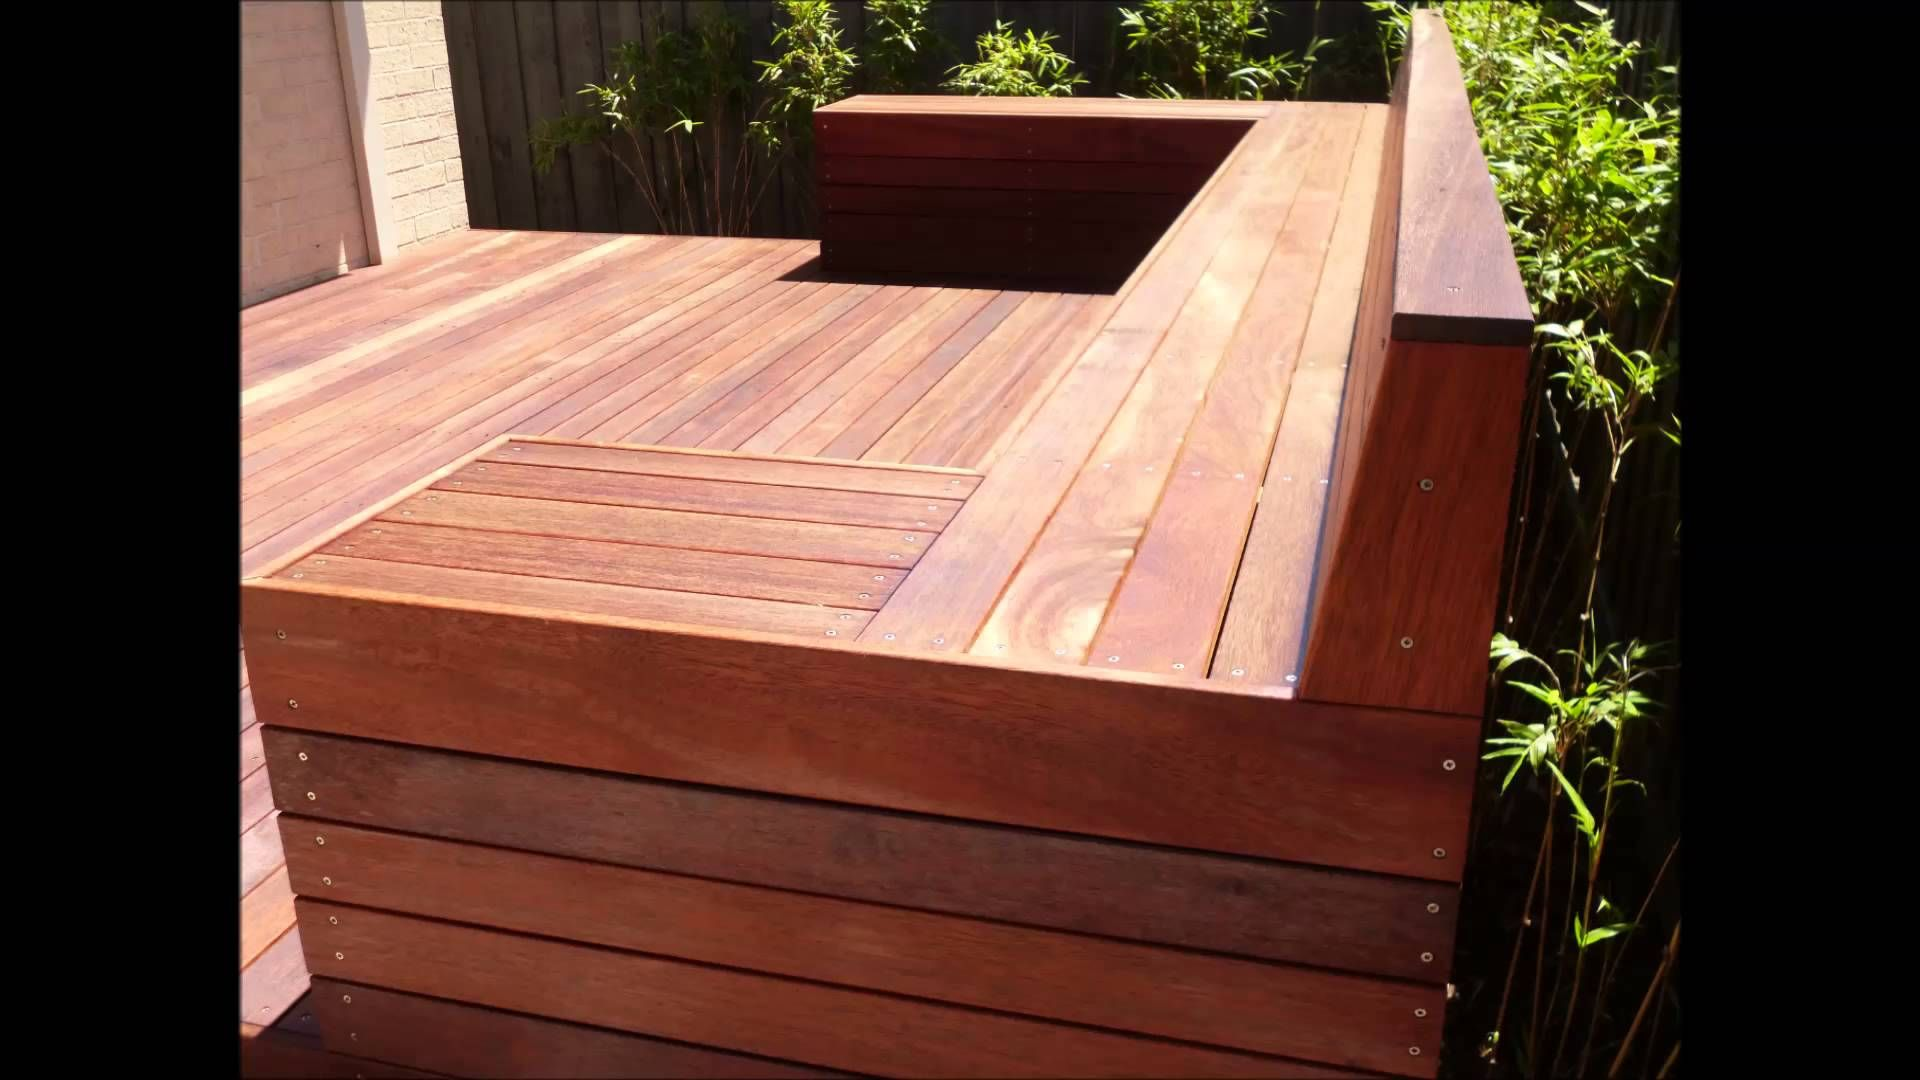 Accessories & Furniture,Alluring Build A Wooden Bench With